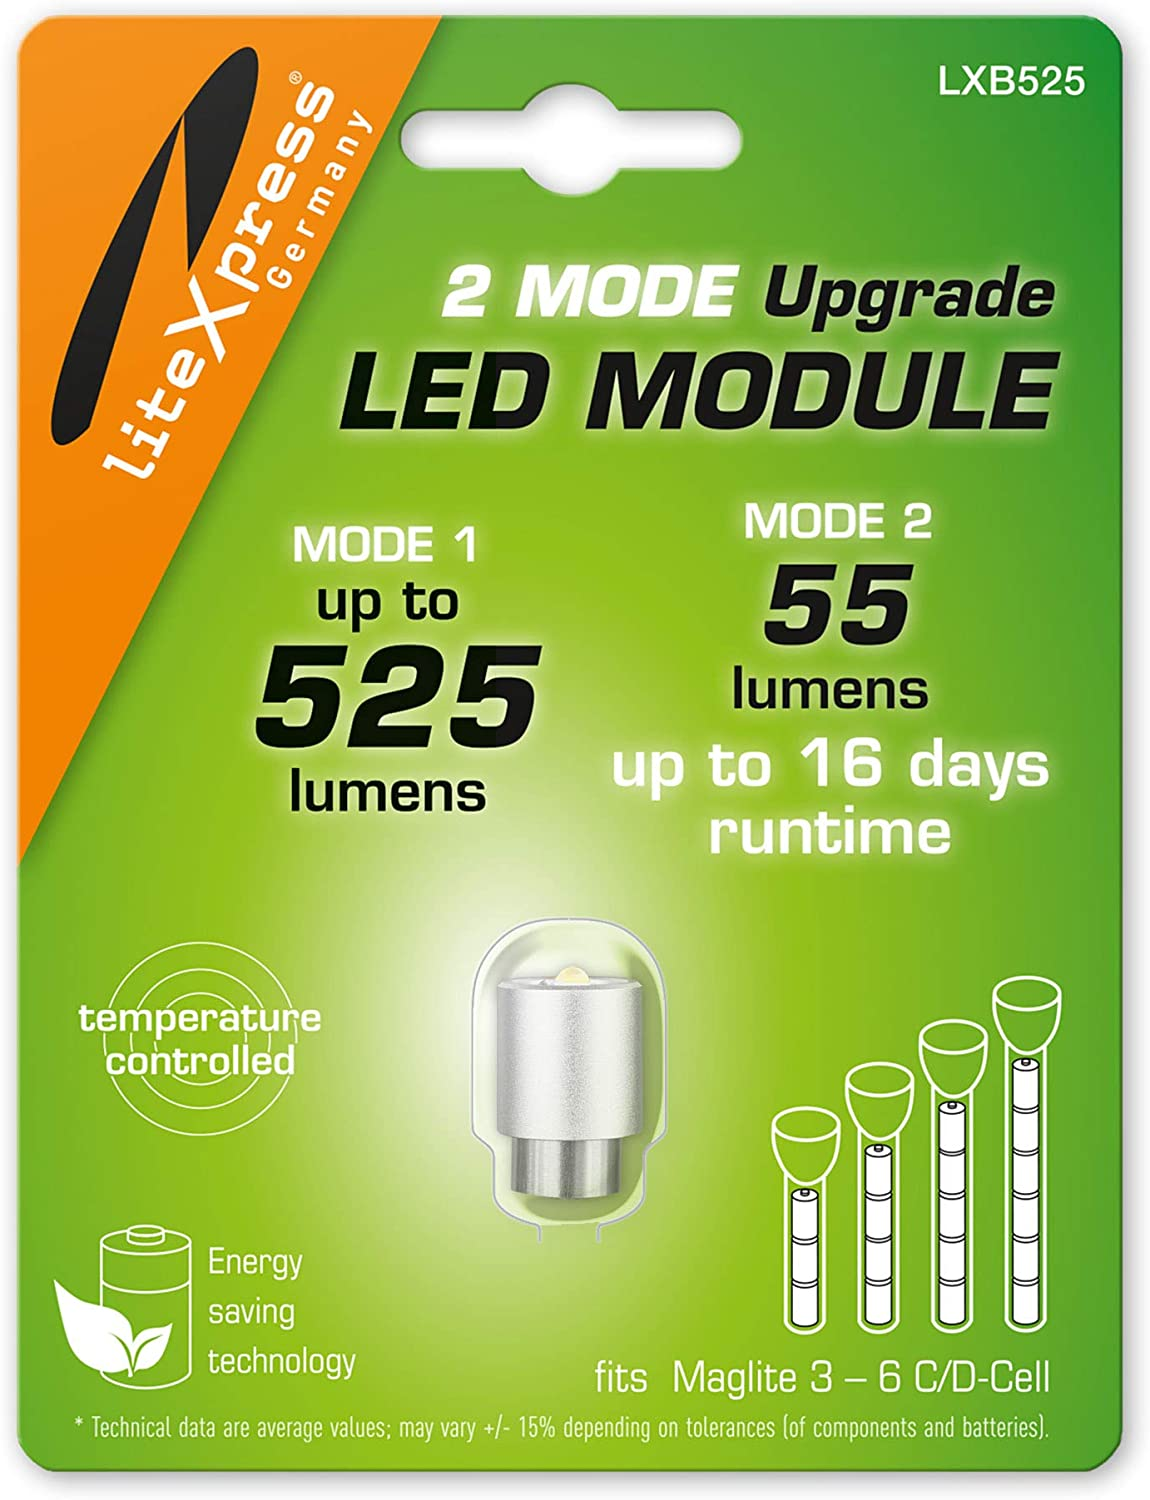 LiteXpress LXB525 2Mode LED Upgrade Modules 525 or 55 Lumens for 3-6 C/D-Cell Maglite Flashlights